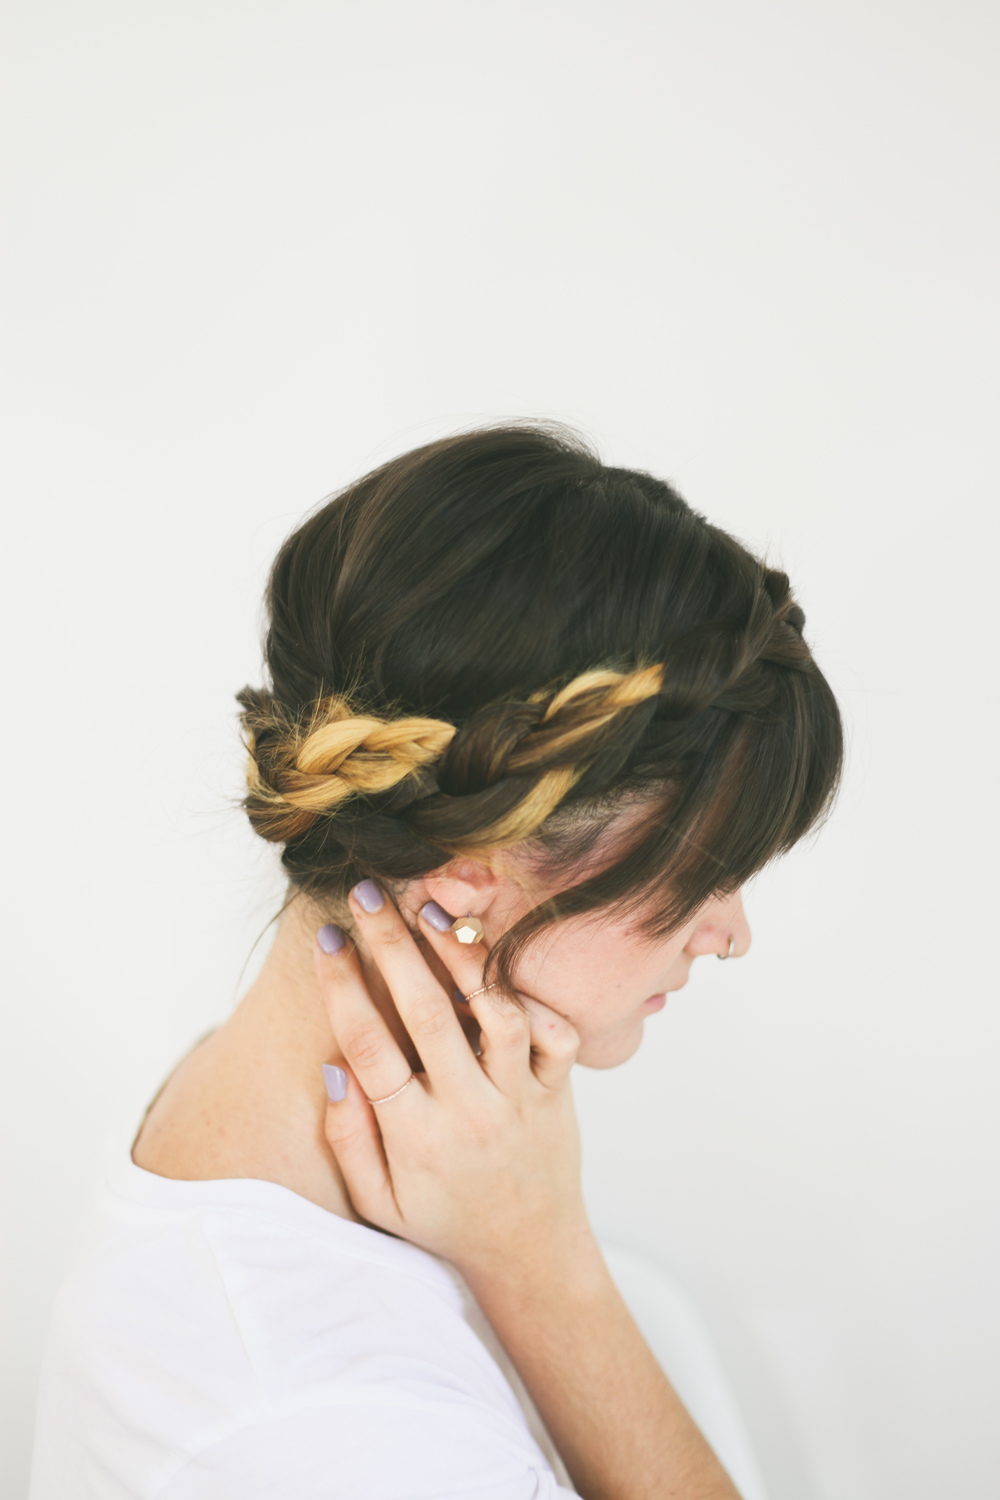 Hair Tutorial // Braided Crown Read >